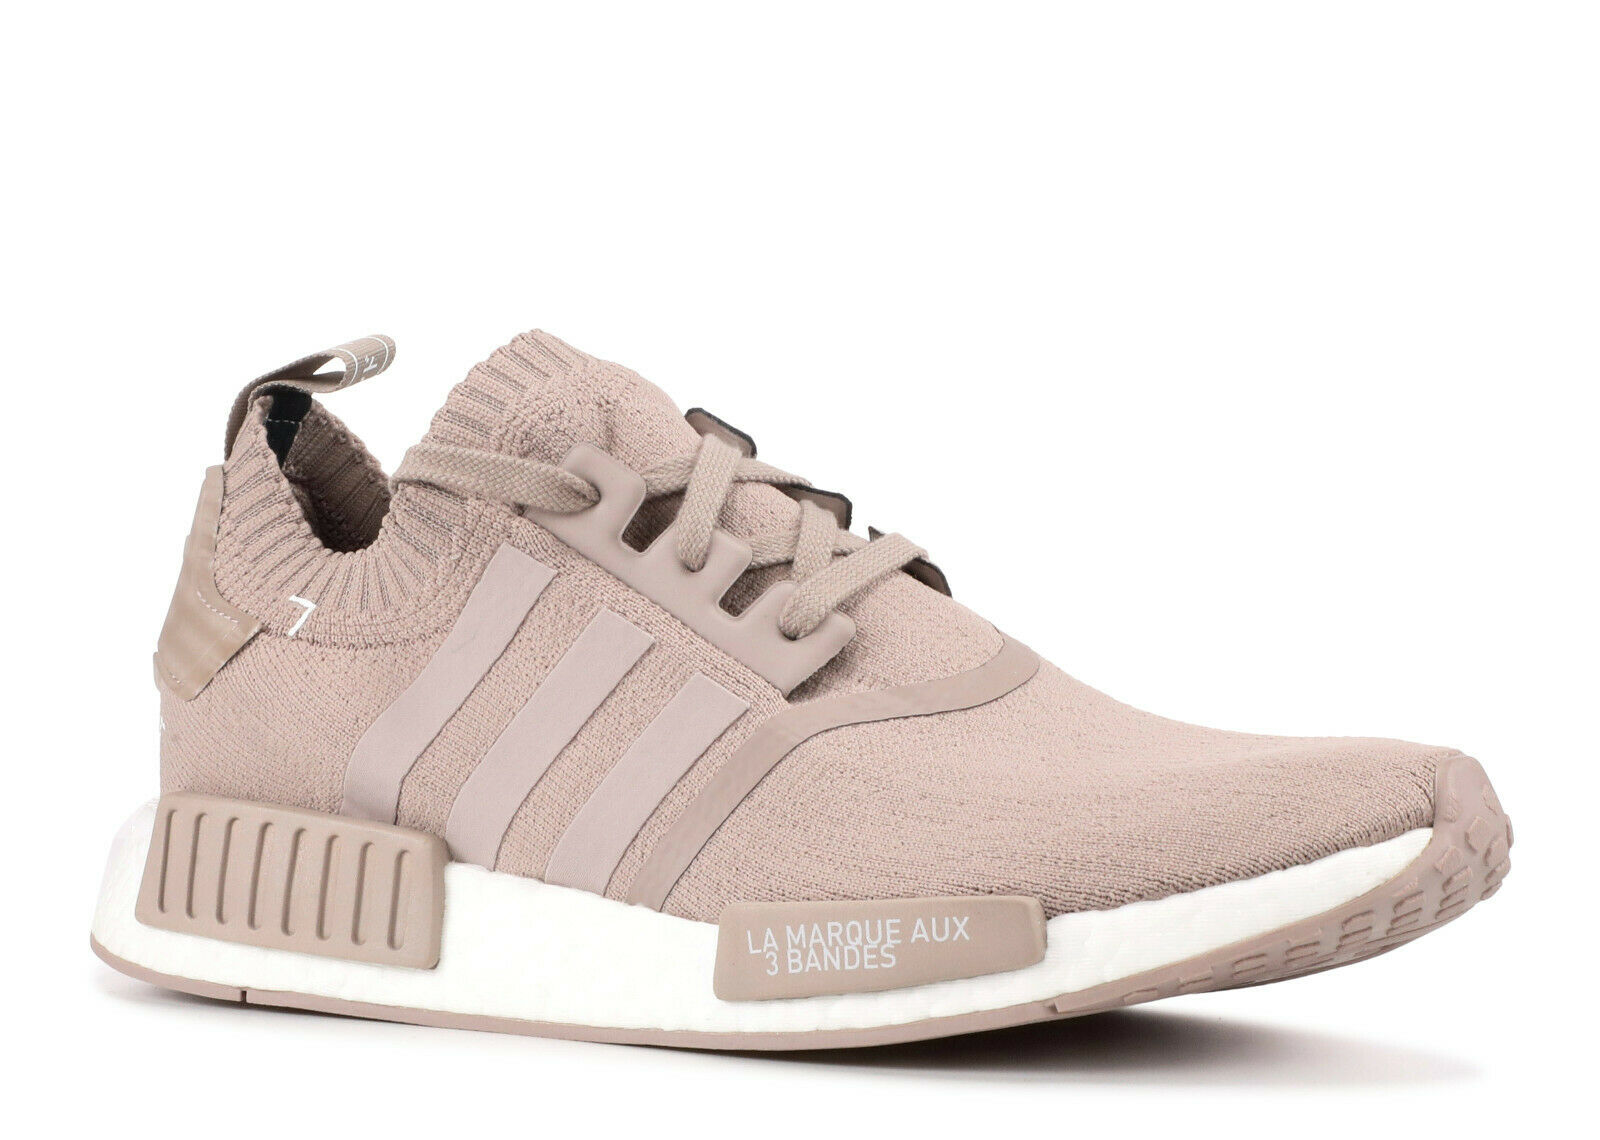 Nmd R1 Pk 'French Beige' - S81848 - Size 10.5